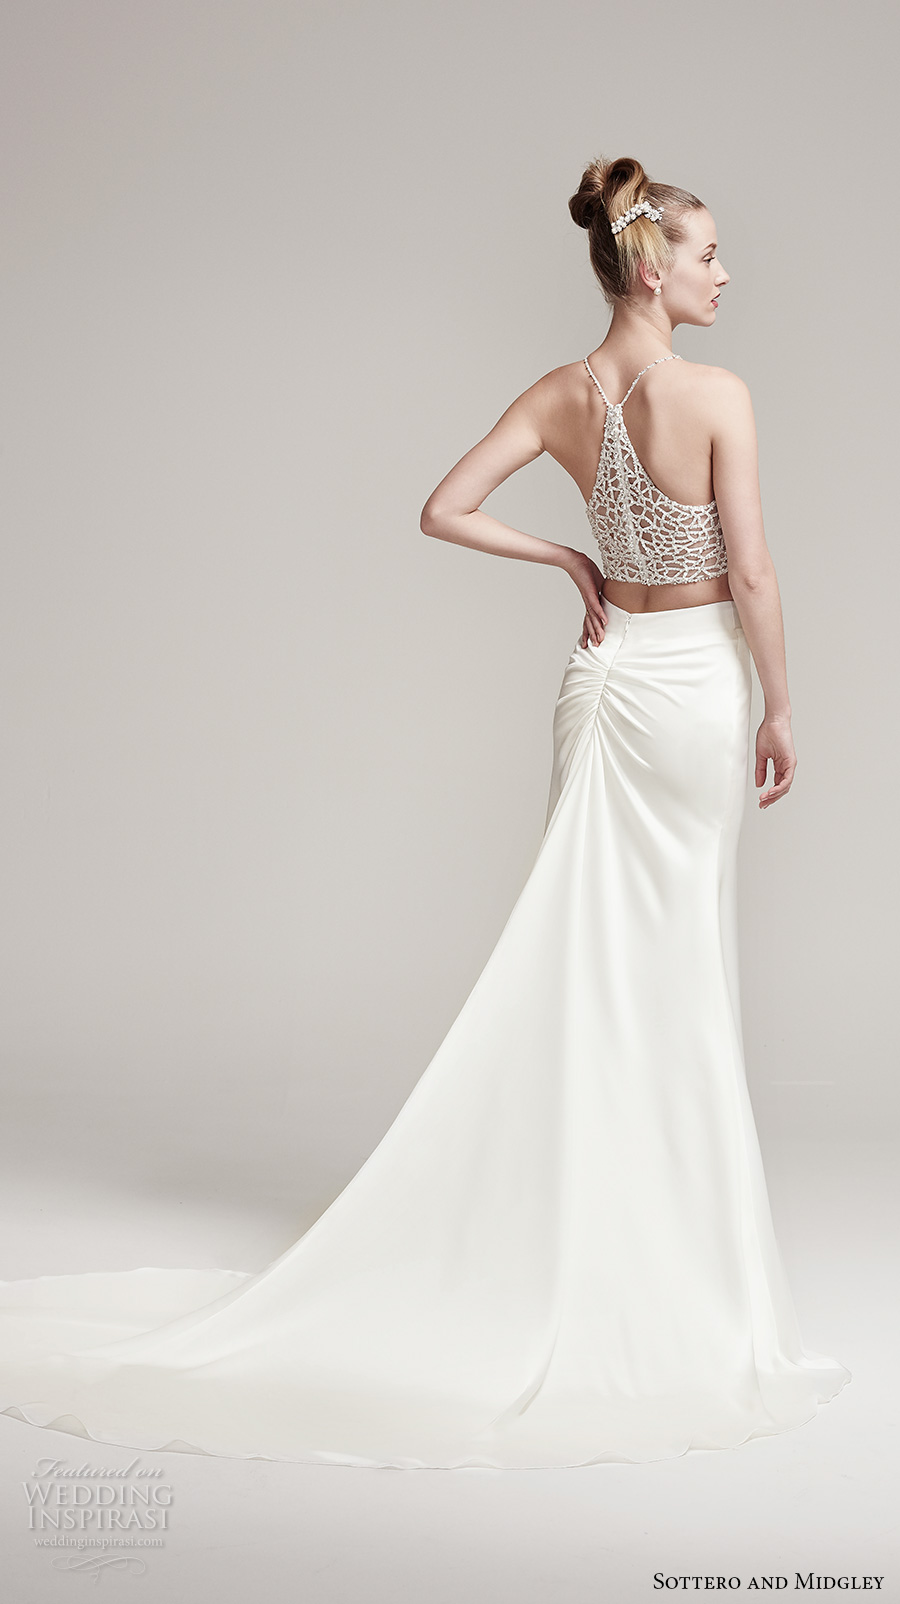 Sottero and midgley fall 2016 wedding dresses am lie for Wedding dress with illusion top